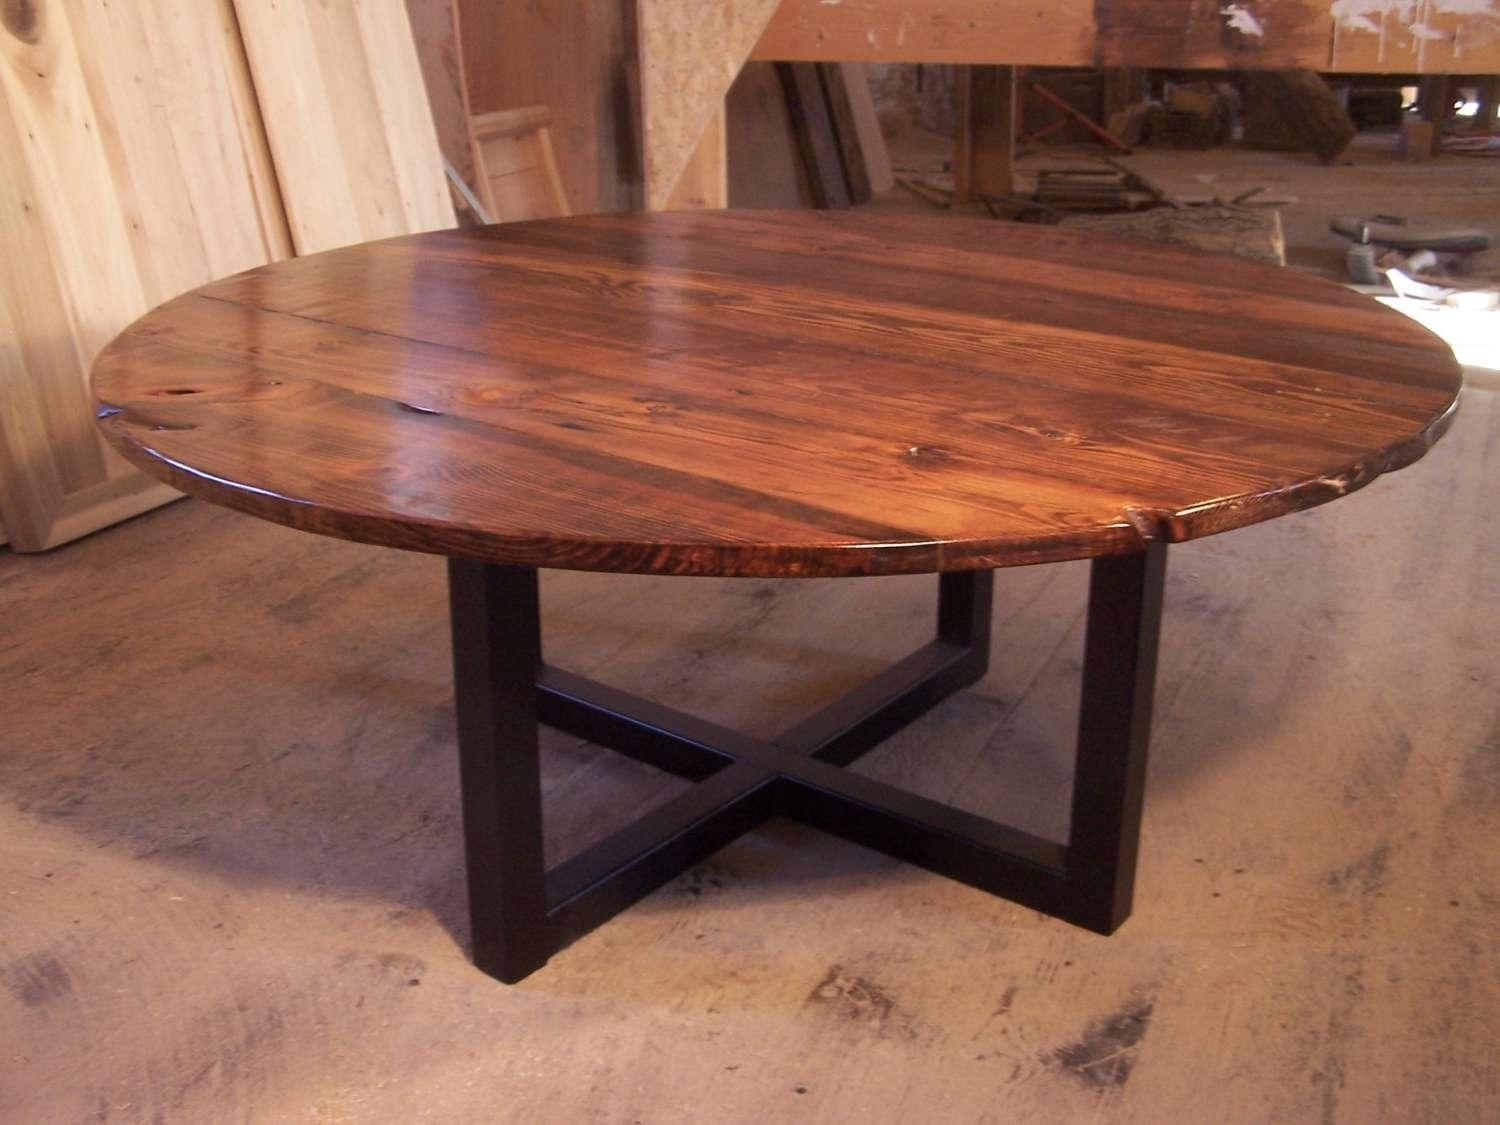 Free Shipping Large Round Coffee Table With Industrial Metal Inside Current Industrial Round Coffee Tables (View 6 of 20)